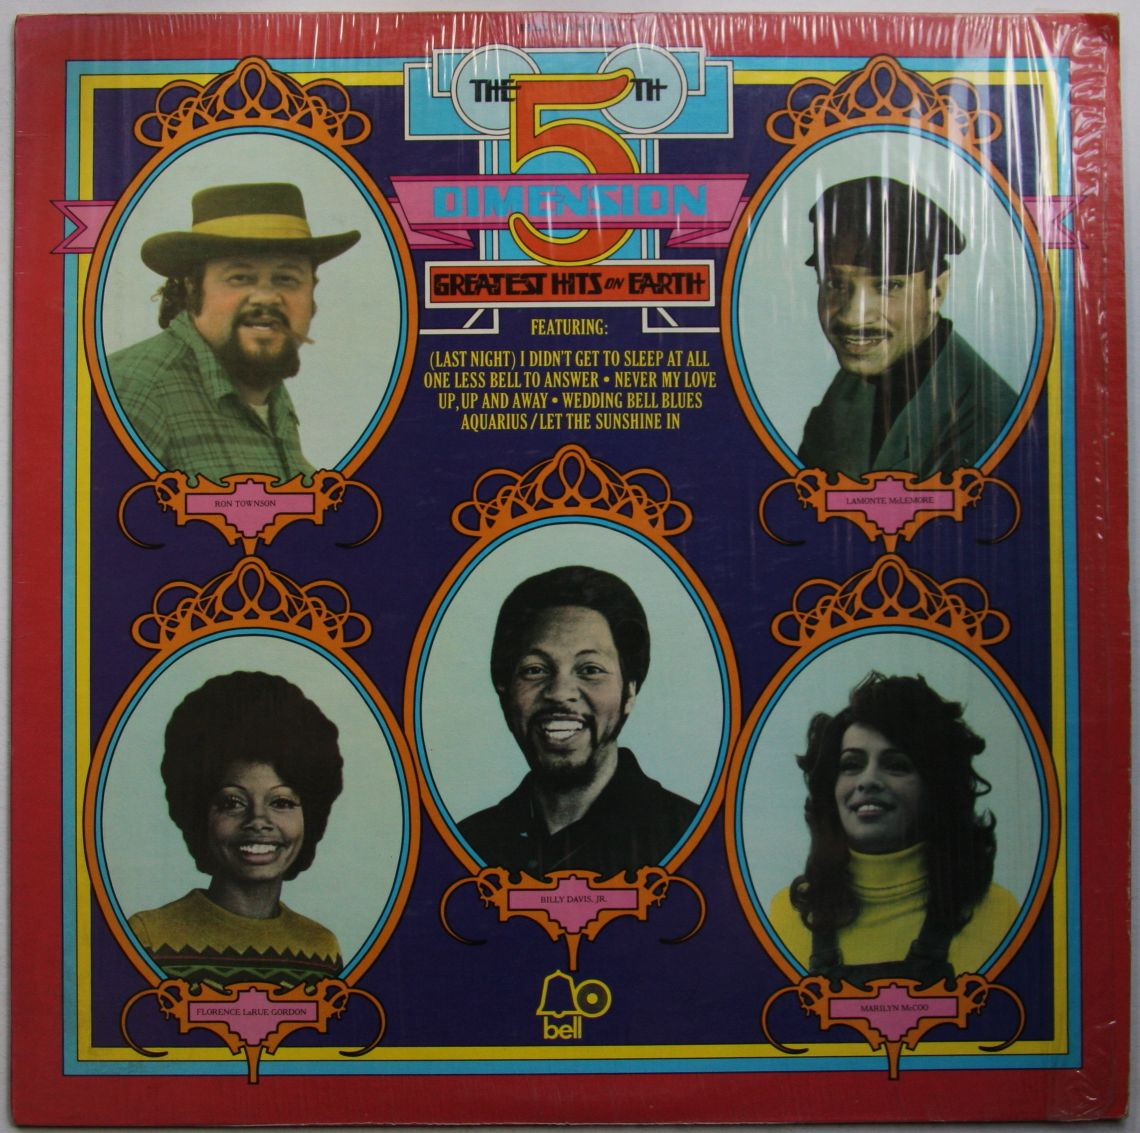 5th Dimension - Greatest Hits On Earth Record